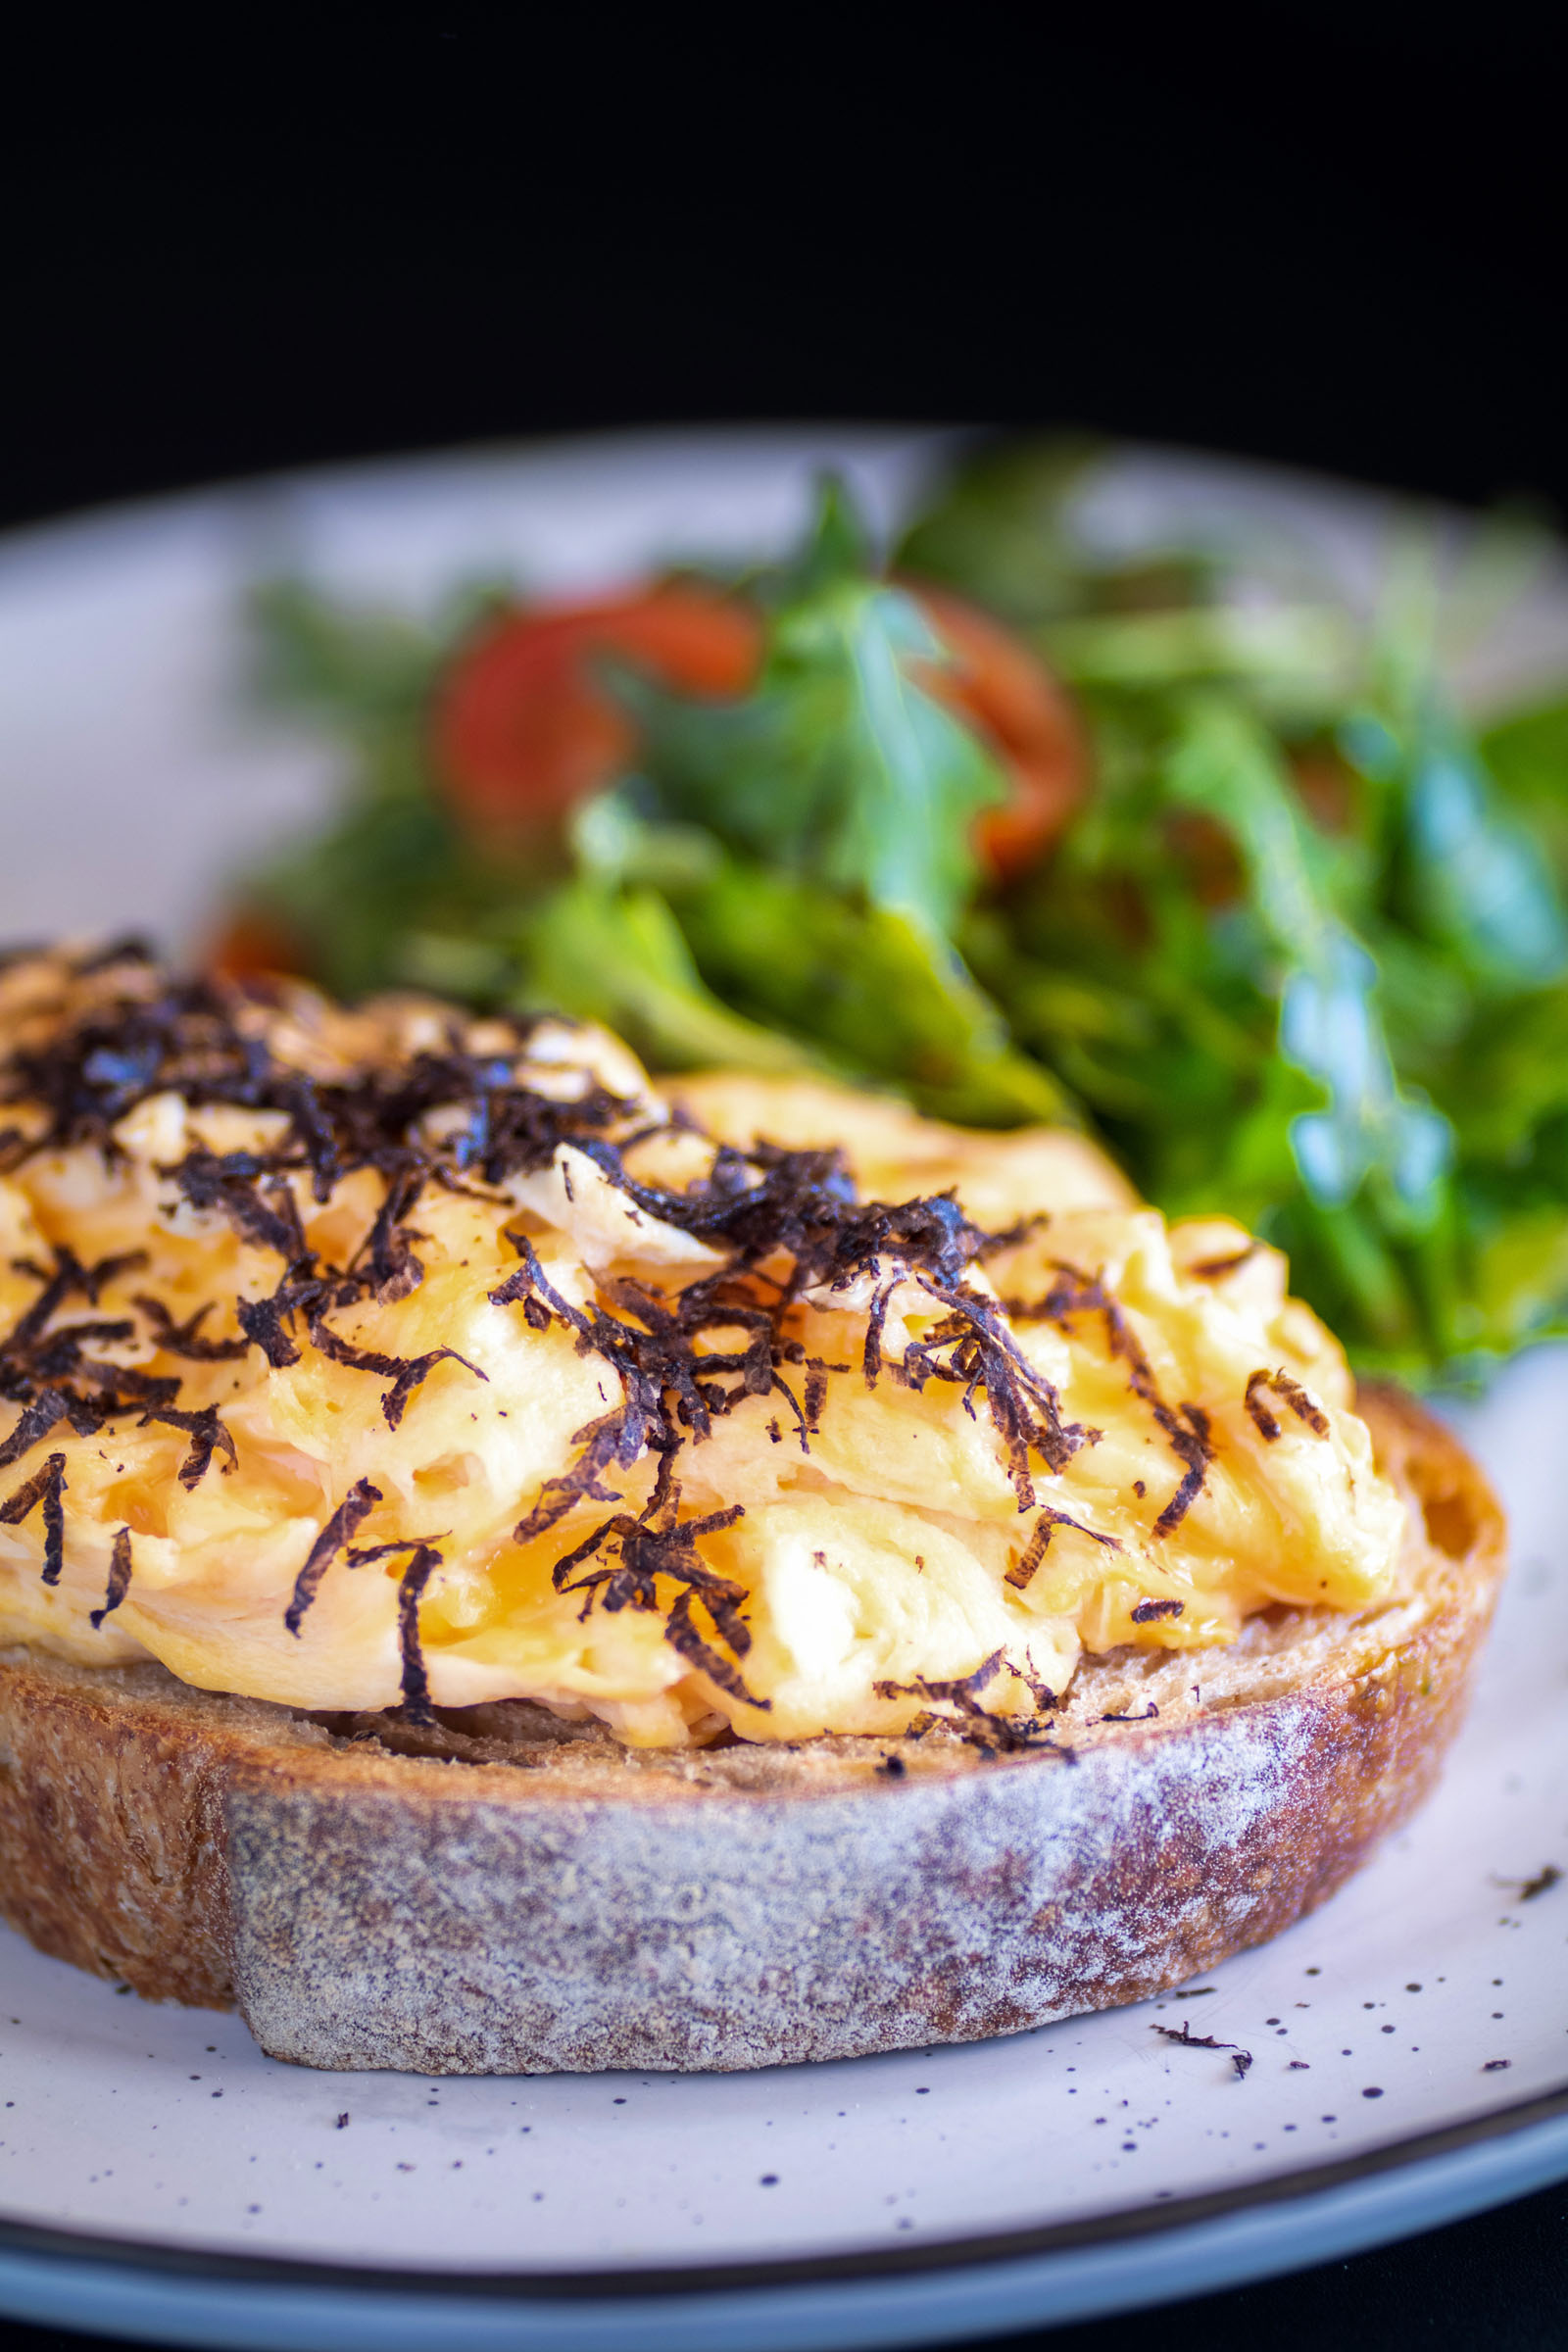 TruffleScrambled Eggs - Creamy scrambled free-range eggs, served atop a slice of toasted sourdough from Baker et Chef and accompanied with a colourful rocket and cherry tomato salad. Finished with fresh, fine shavings of the rich, locally-grown Manjimup black truffle.